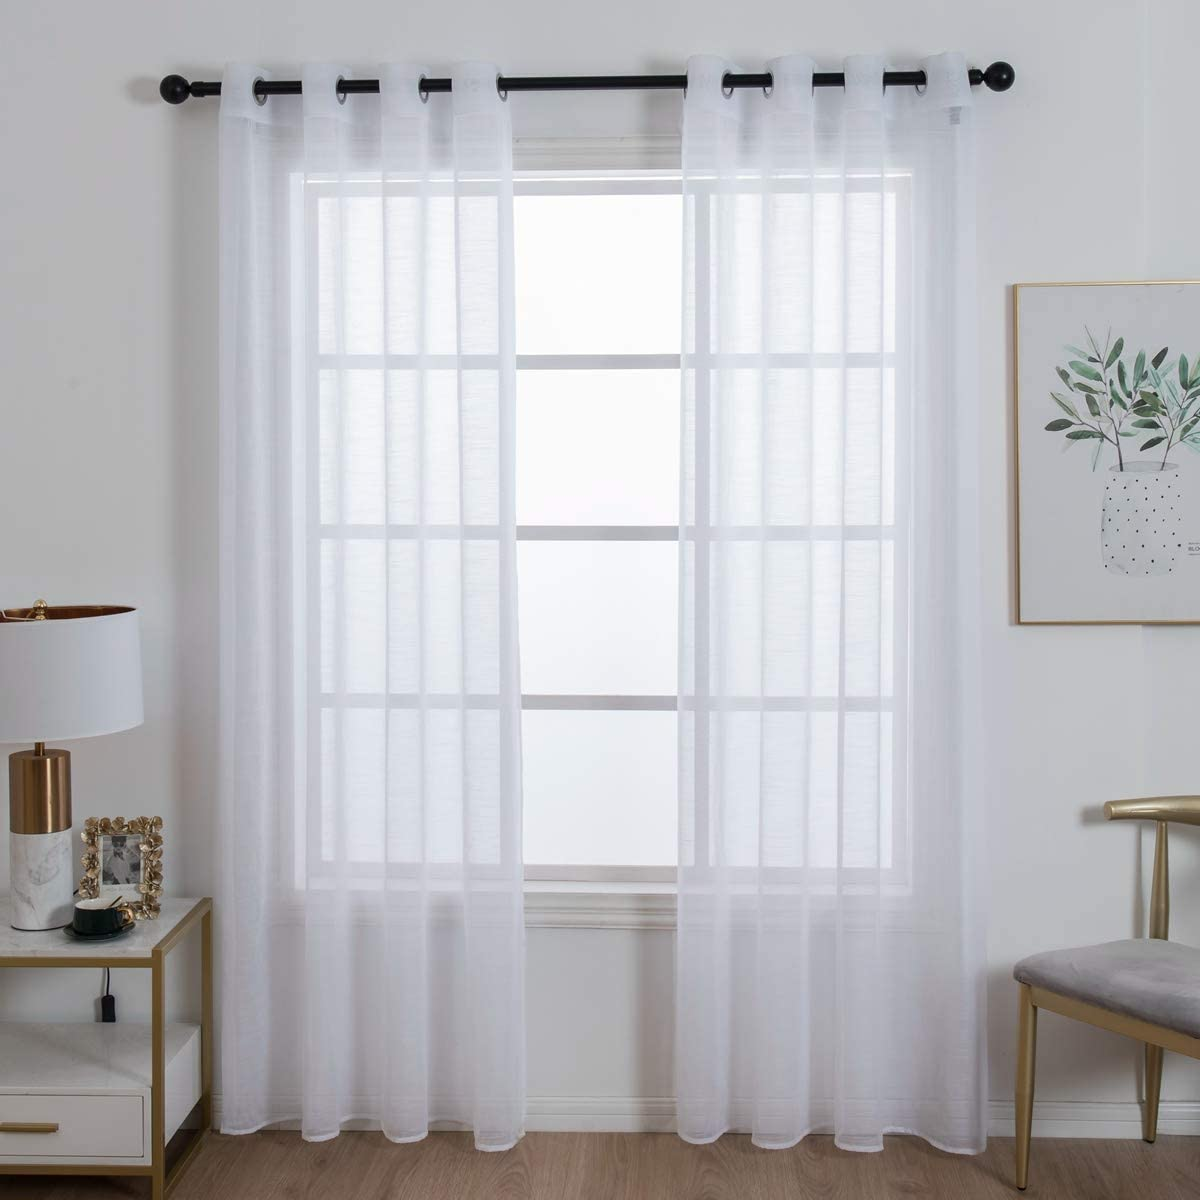 Homeyho Draperies For Sliding Glass Doors Sheer Curtains Grommet Top Sheer Curtains For Bedroom 2 Panels Sheer Curtain Panels With Grommets Draperies For Dining Room 55 X 86 Inch White Home